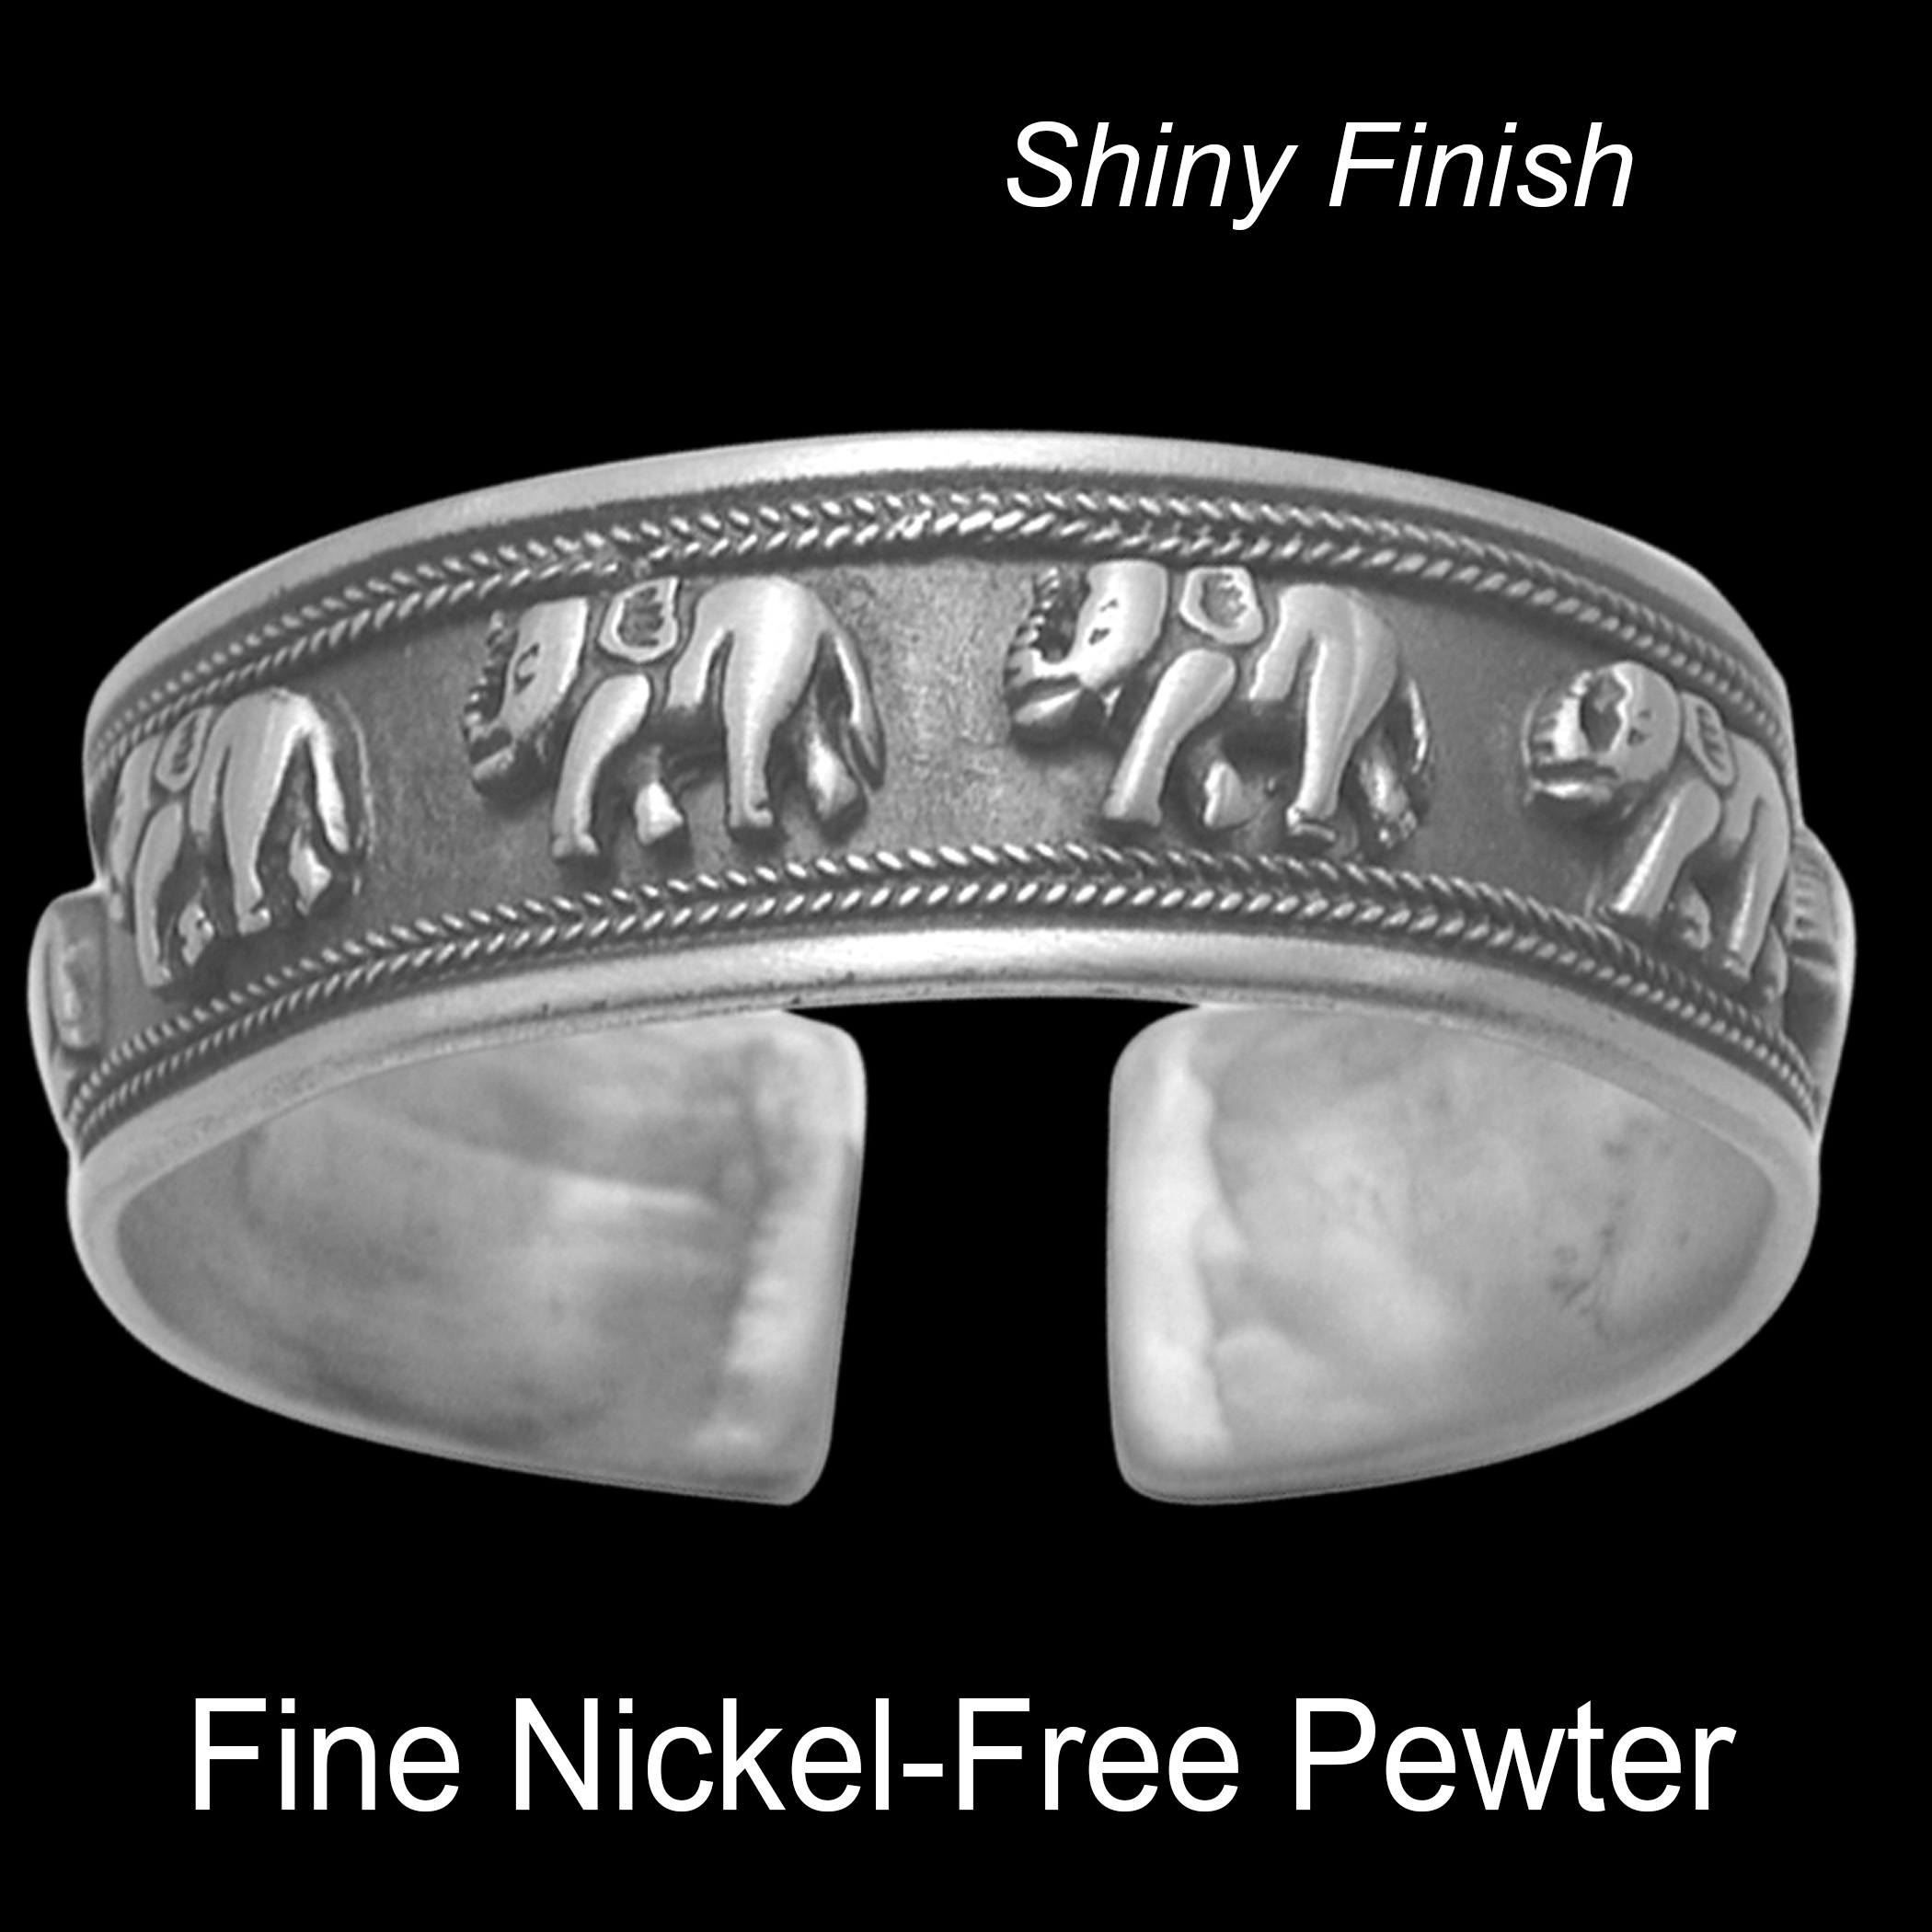 bands clark pewter unique metal alternative mens wedding triton bc rings utah jewelers